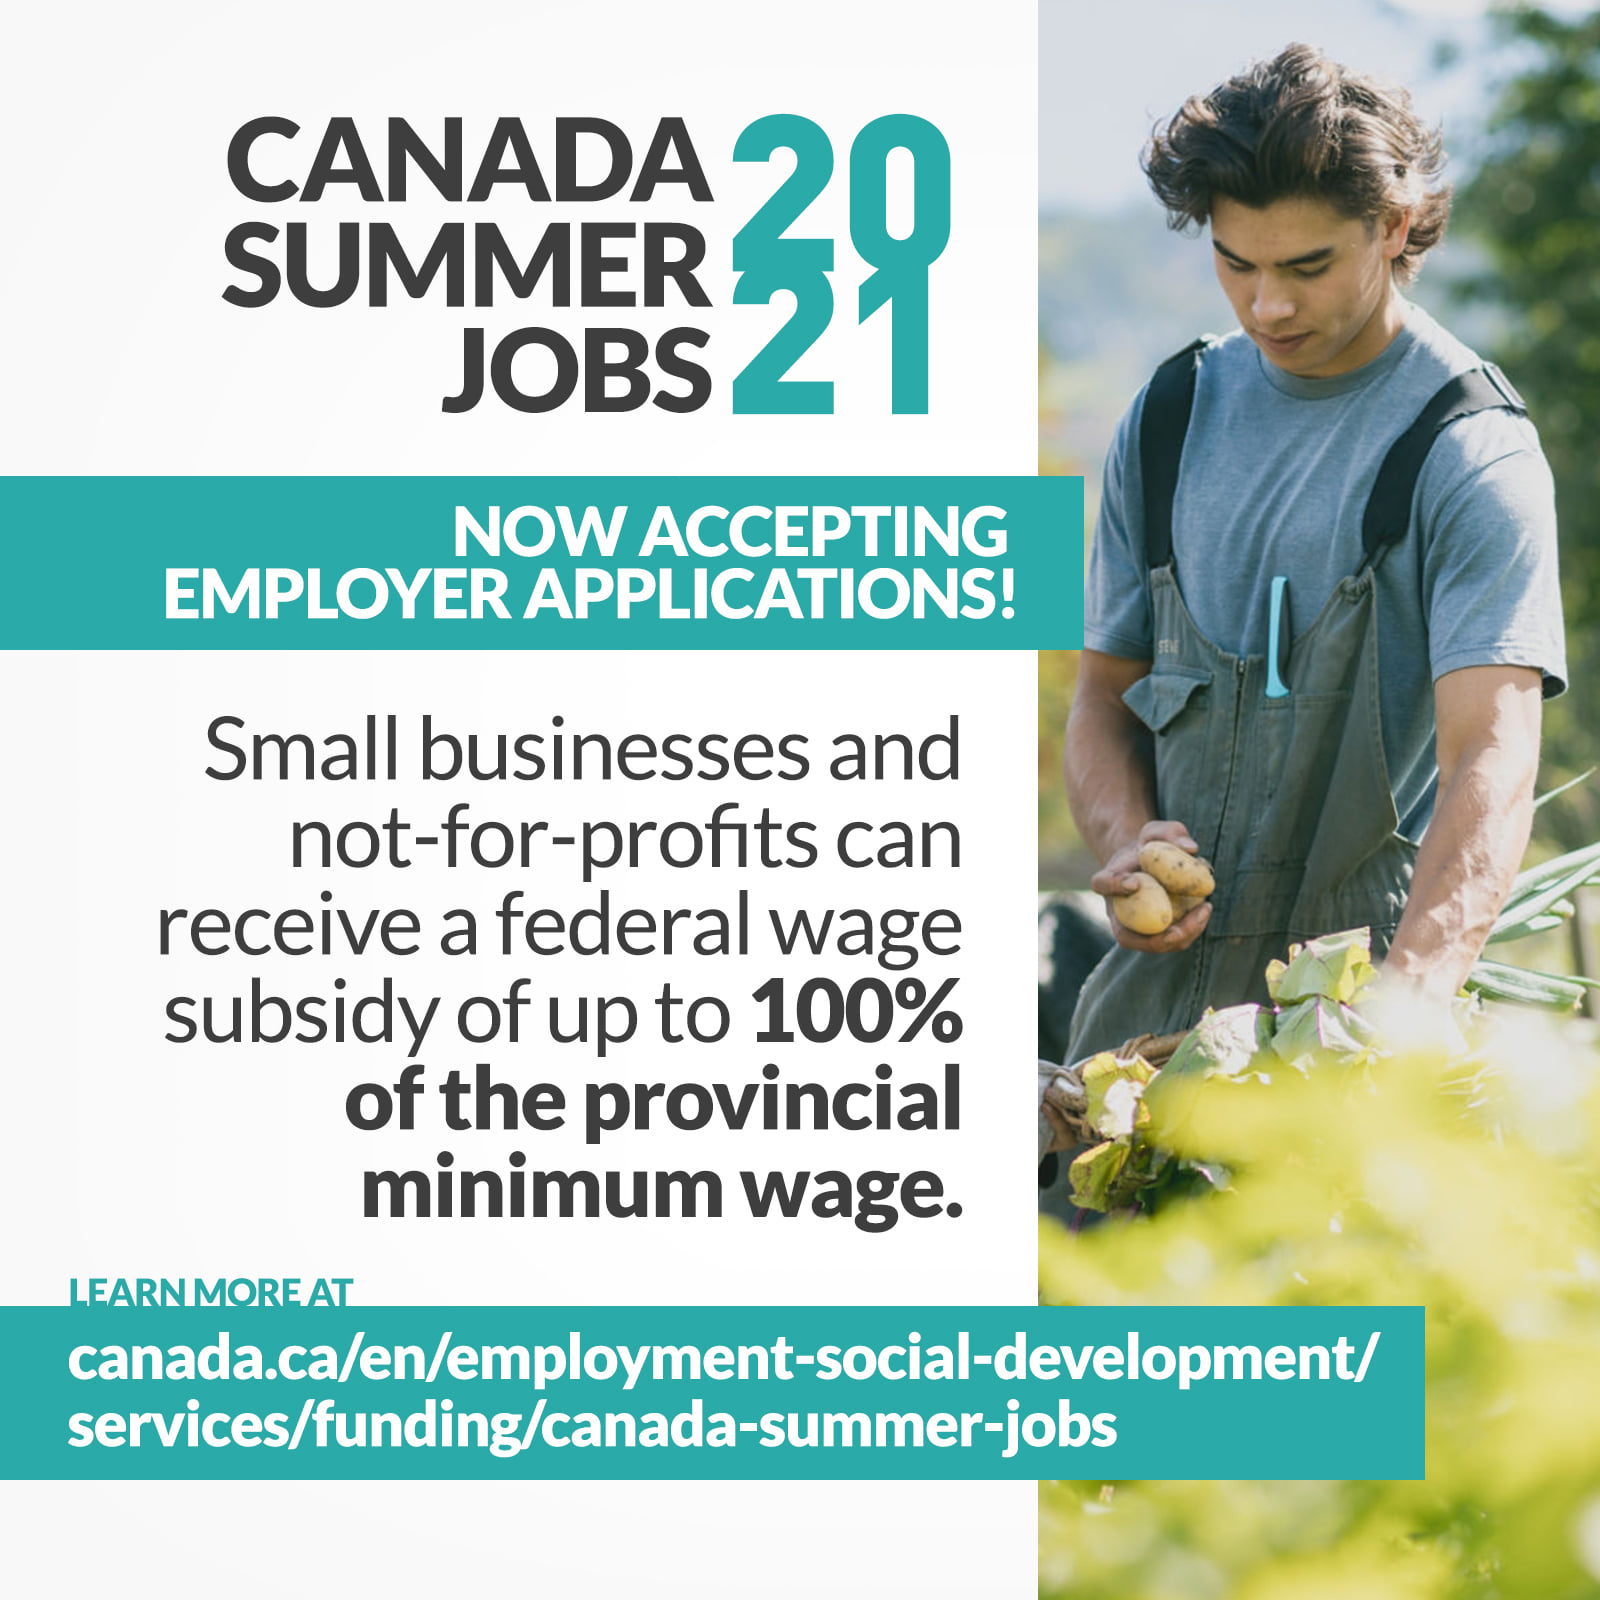 Now Accepting Employer Applications for the Canada Summer Jobs Program